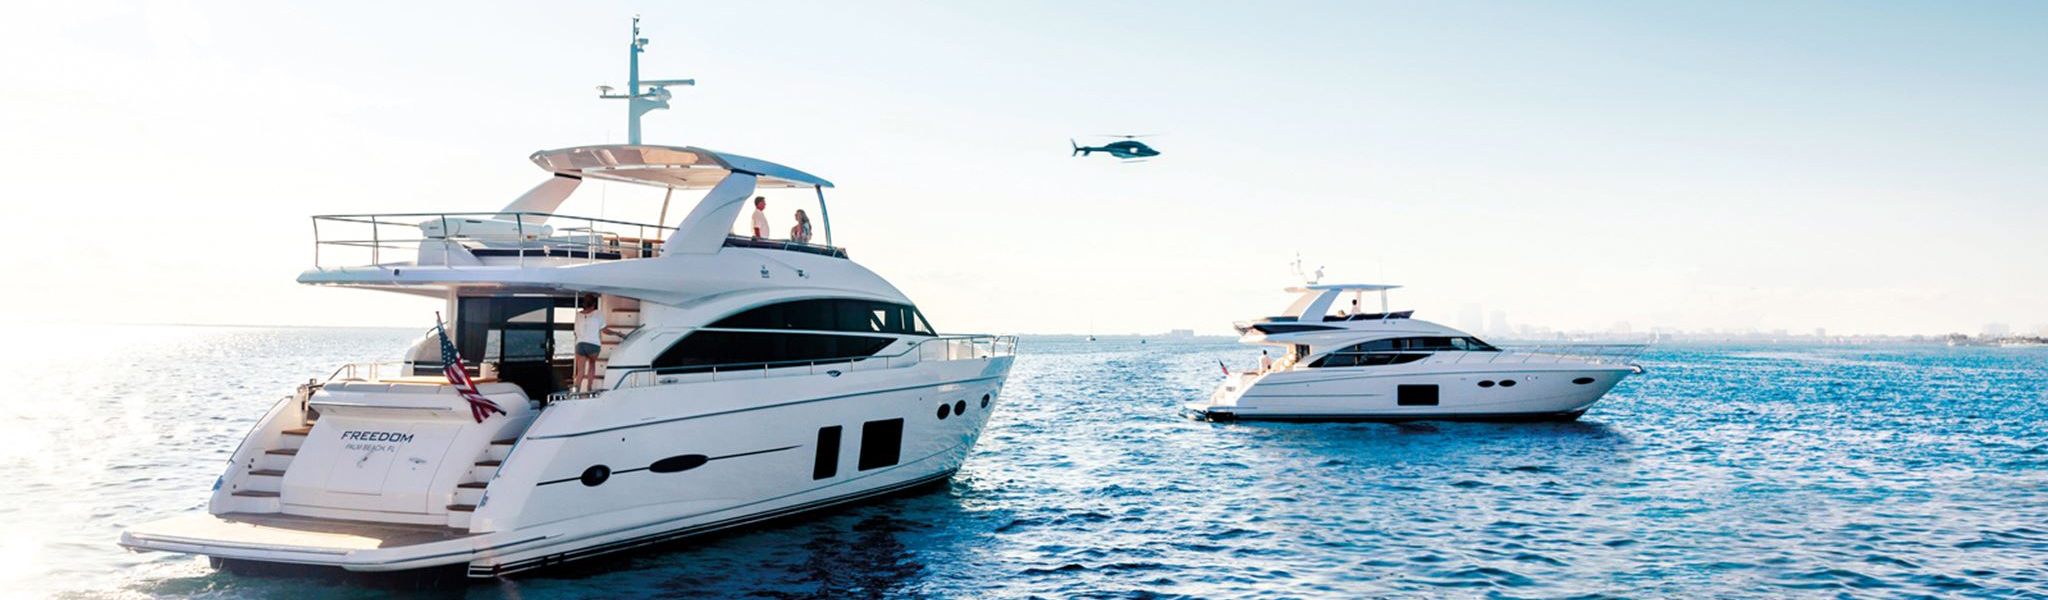 Yacht Deals Worldwide - Charters